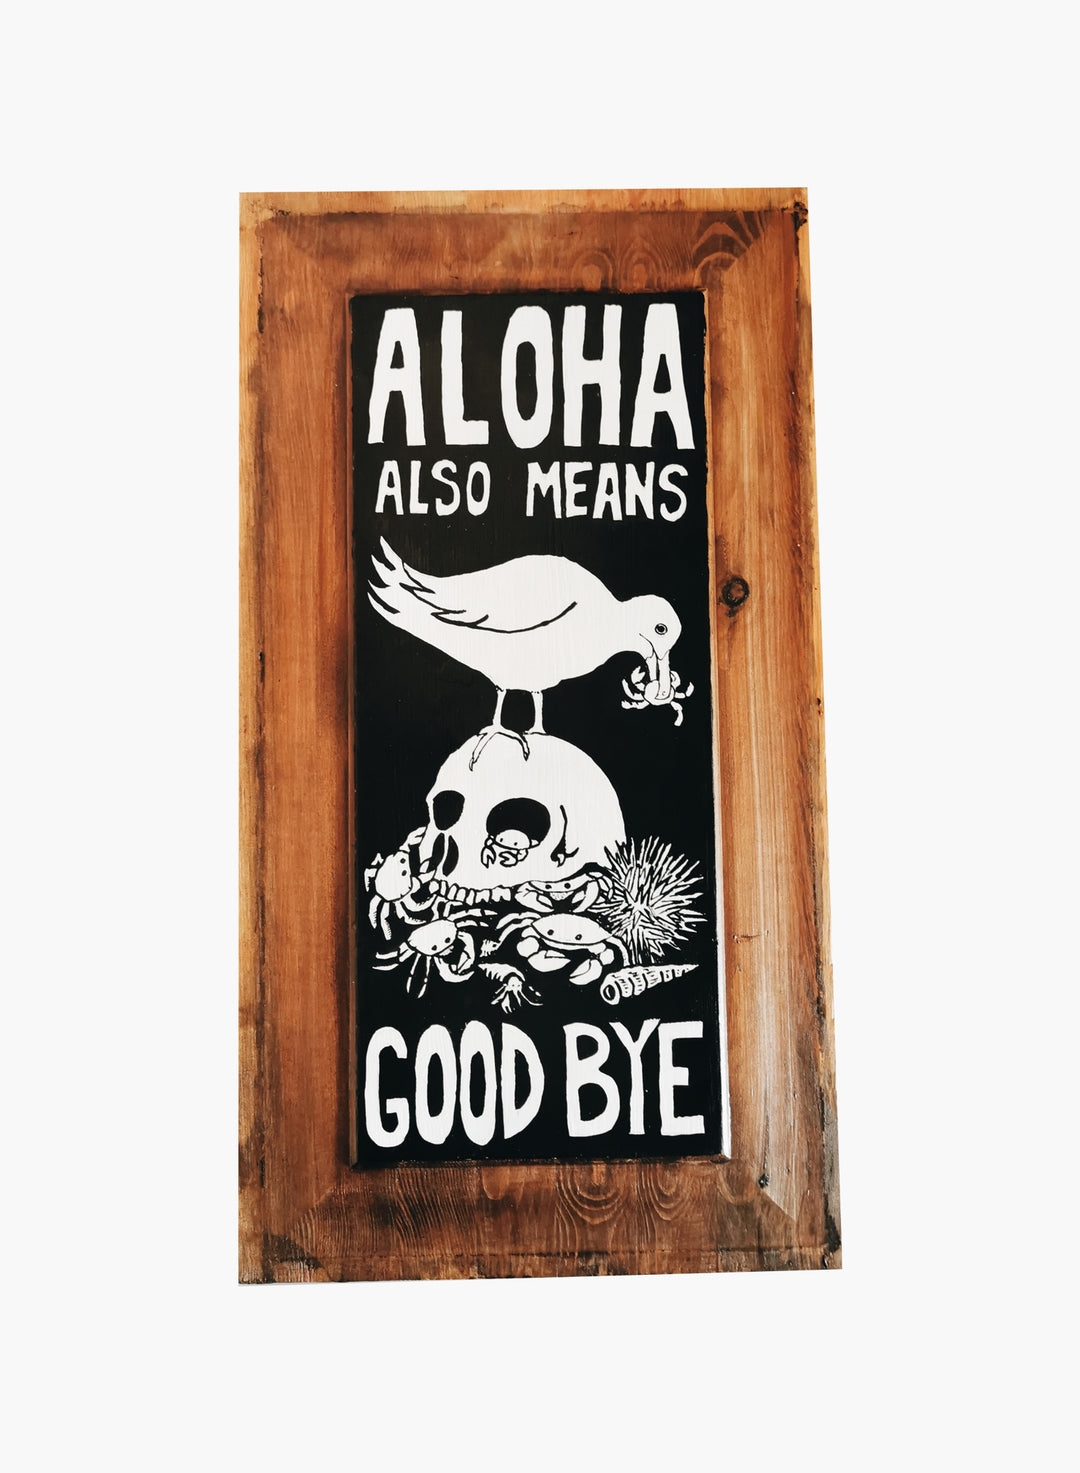 Pentagram Pizza - Aloha Good Bye